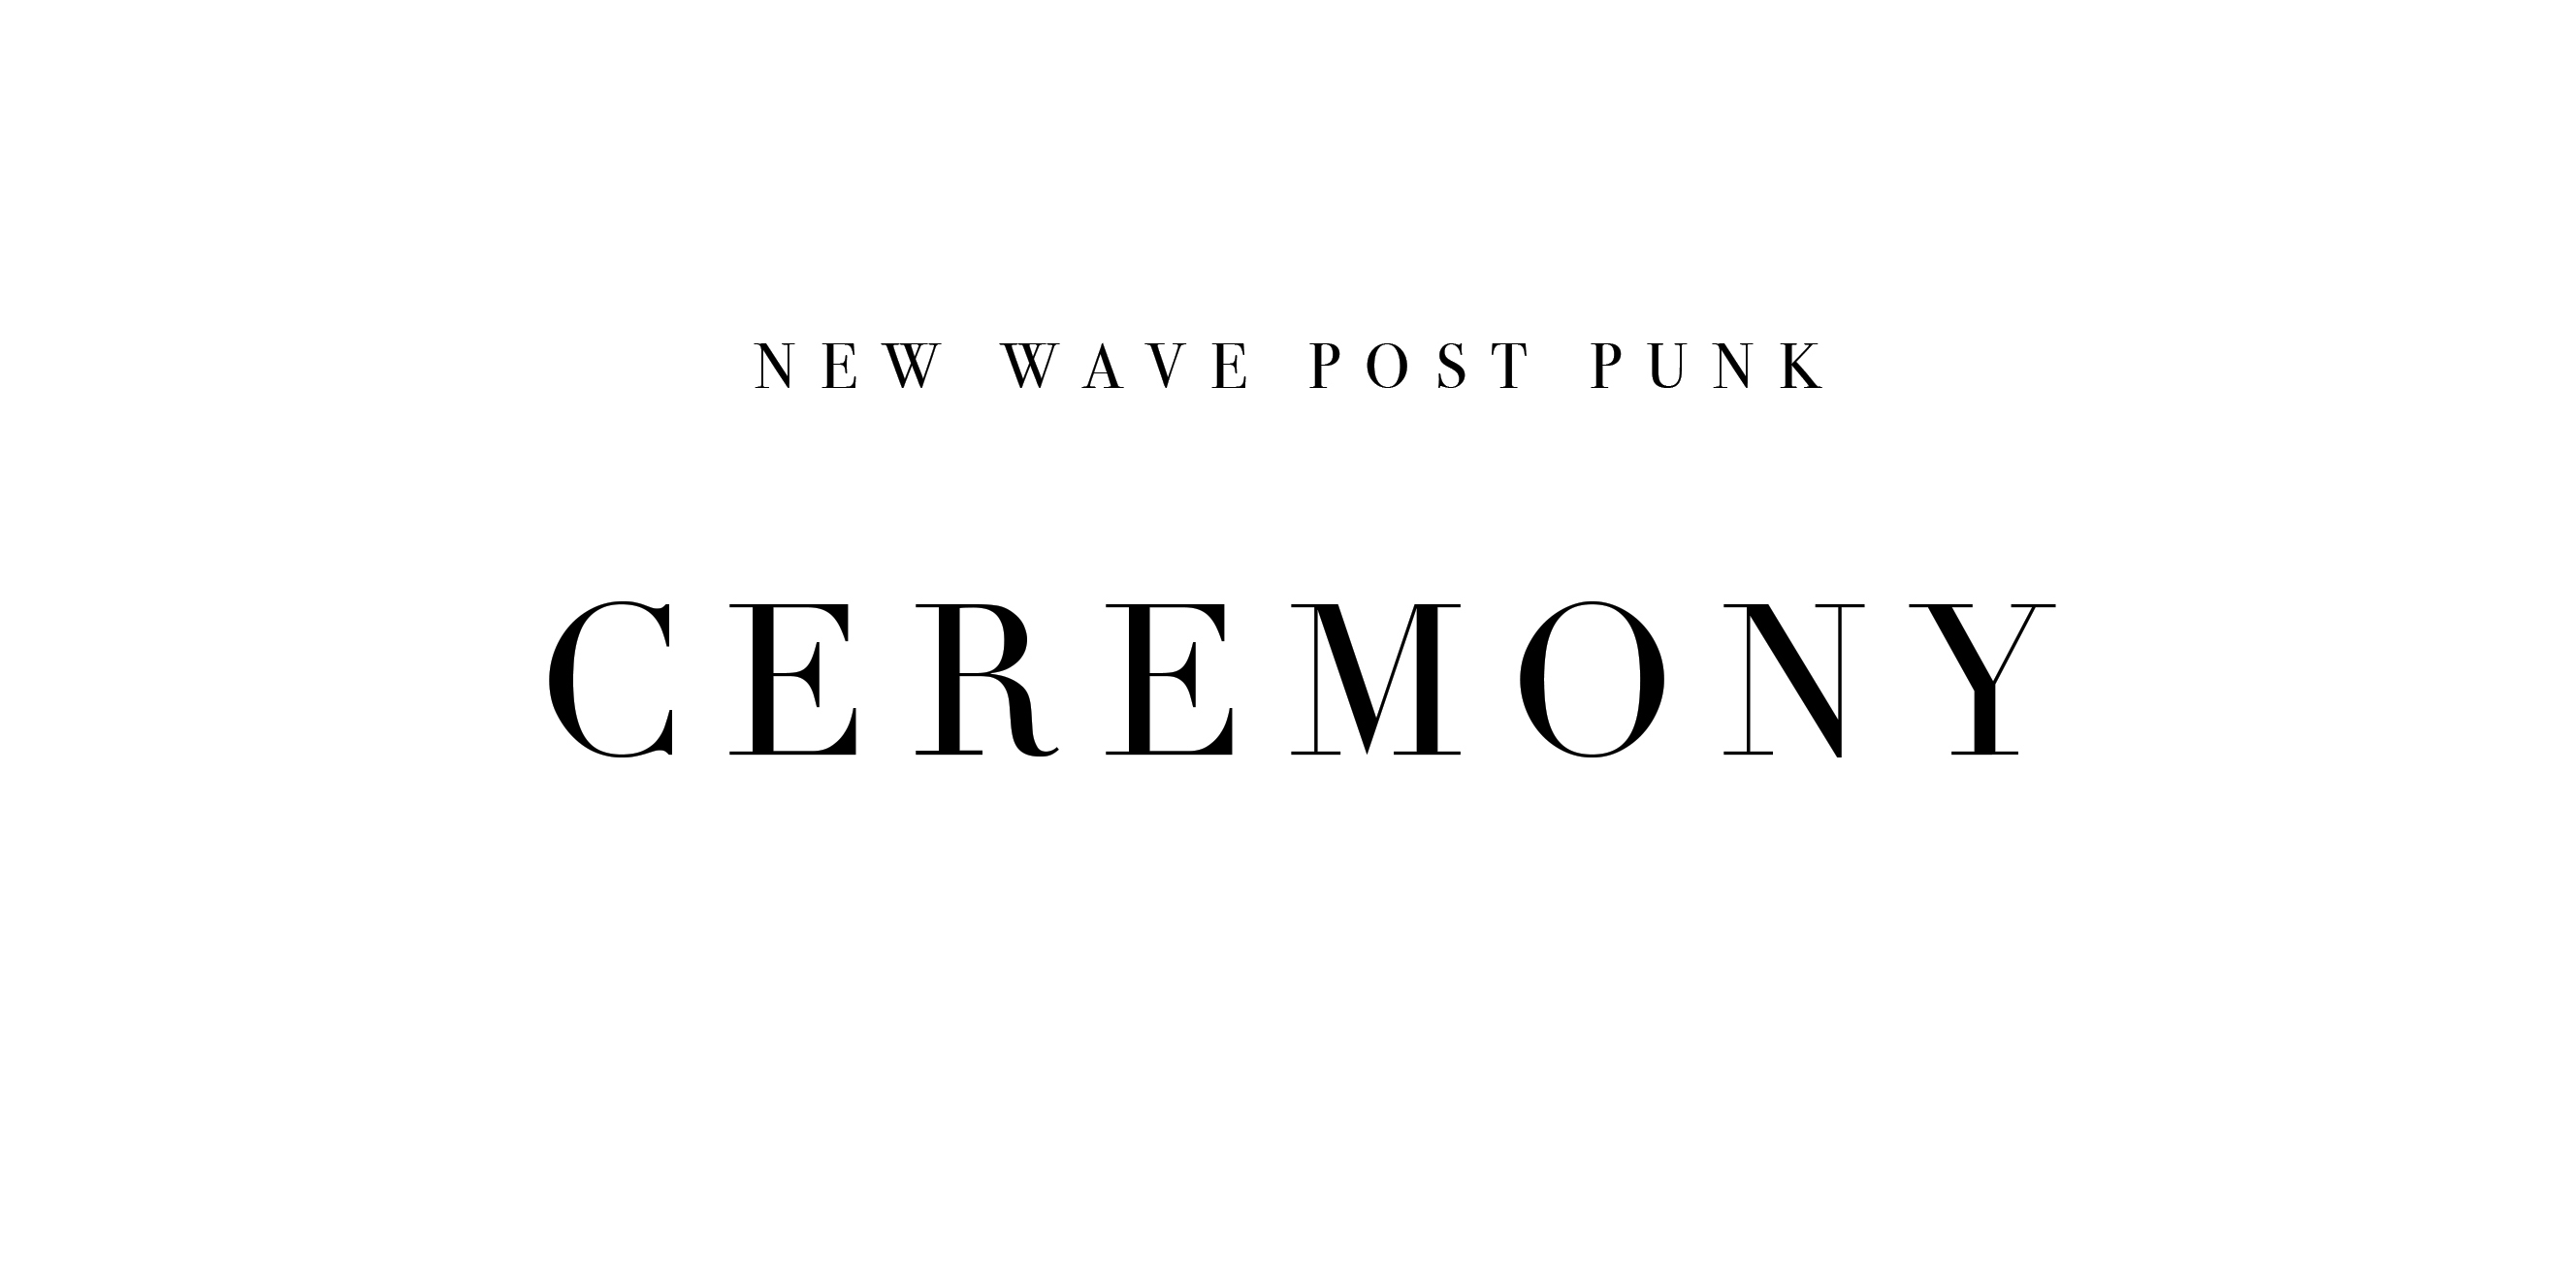 NEW WAVE POST PUNK CEREMONY #13